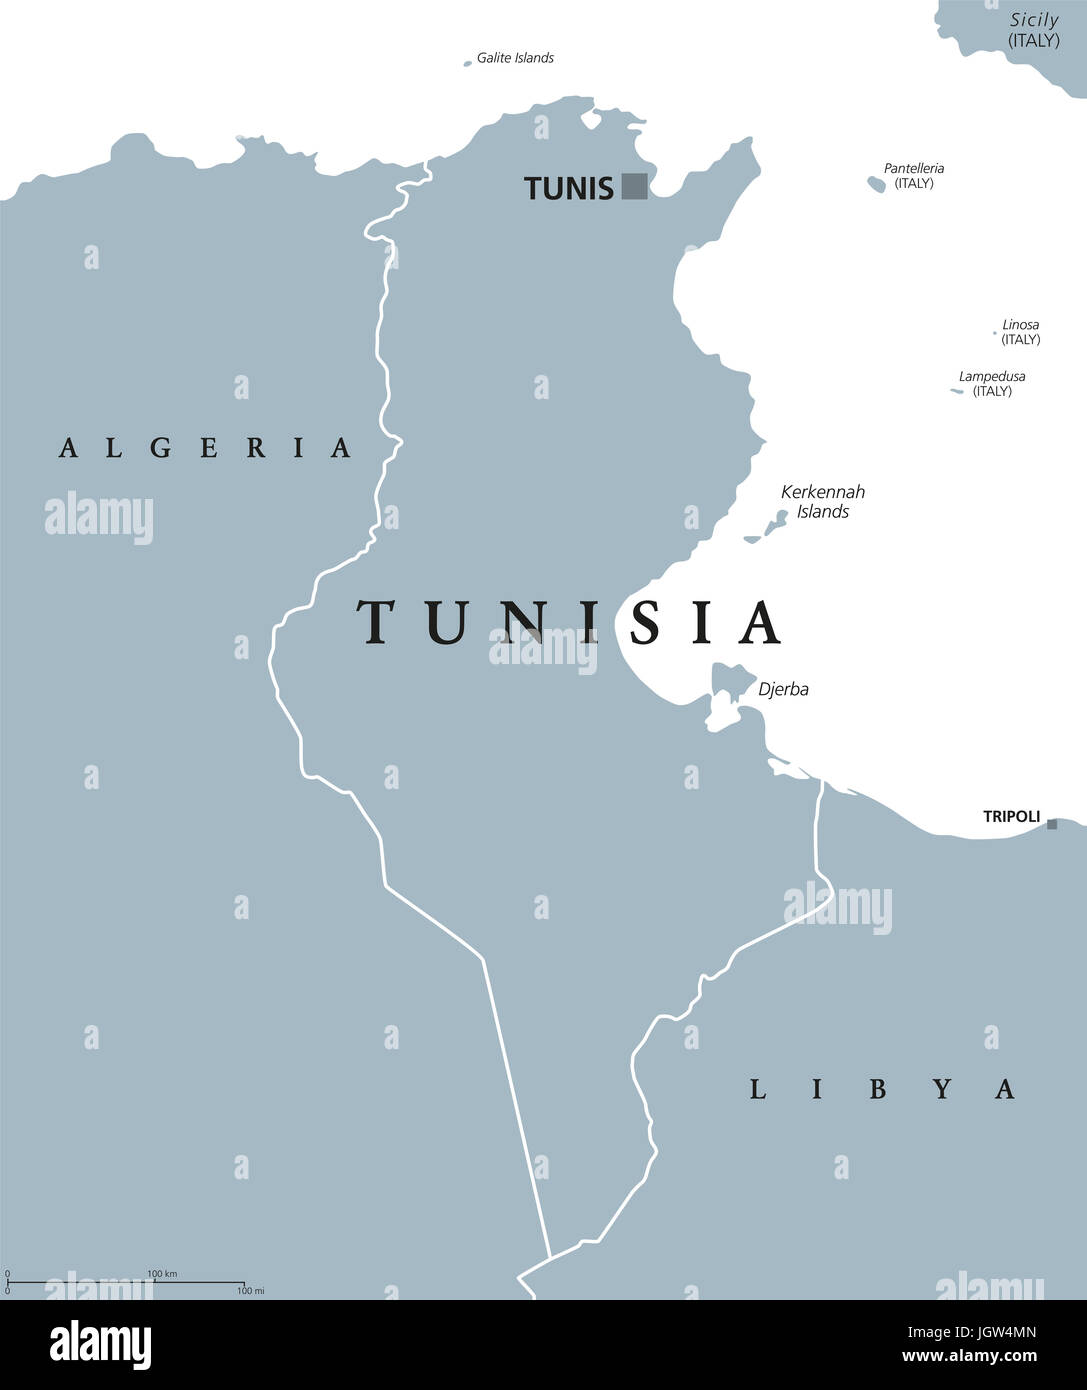 Tunisia political map with capital Tunis and borders. Tunisian